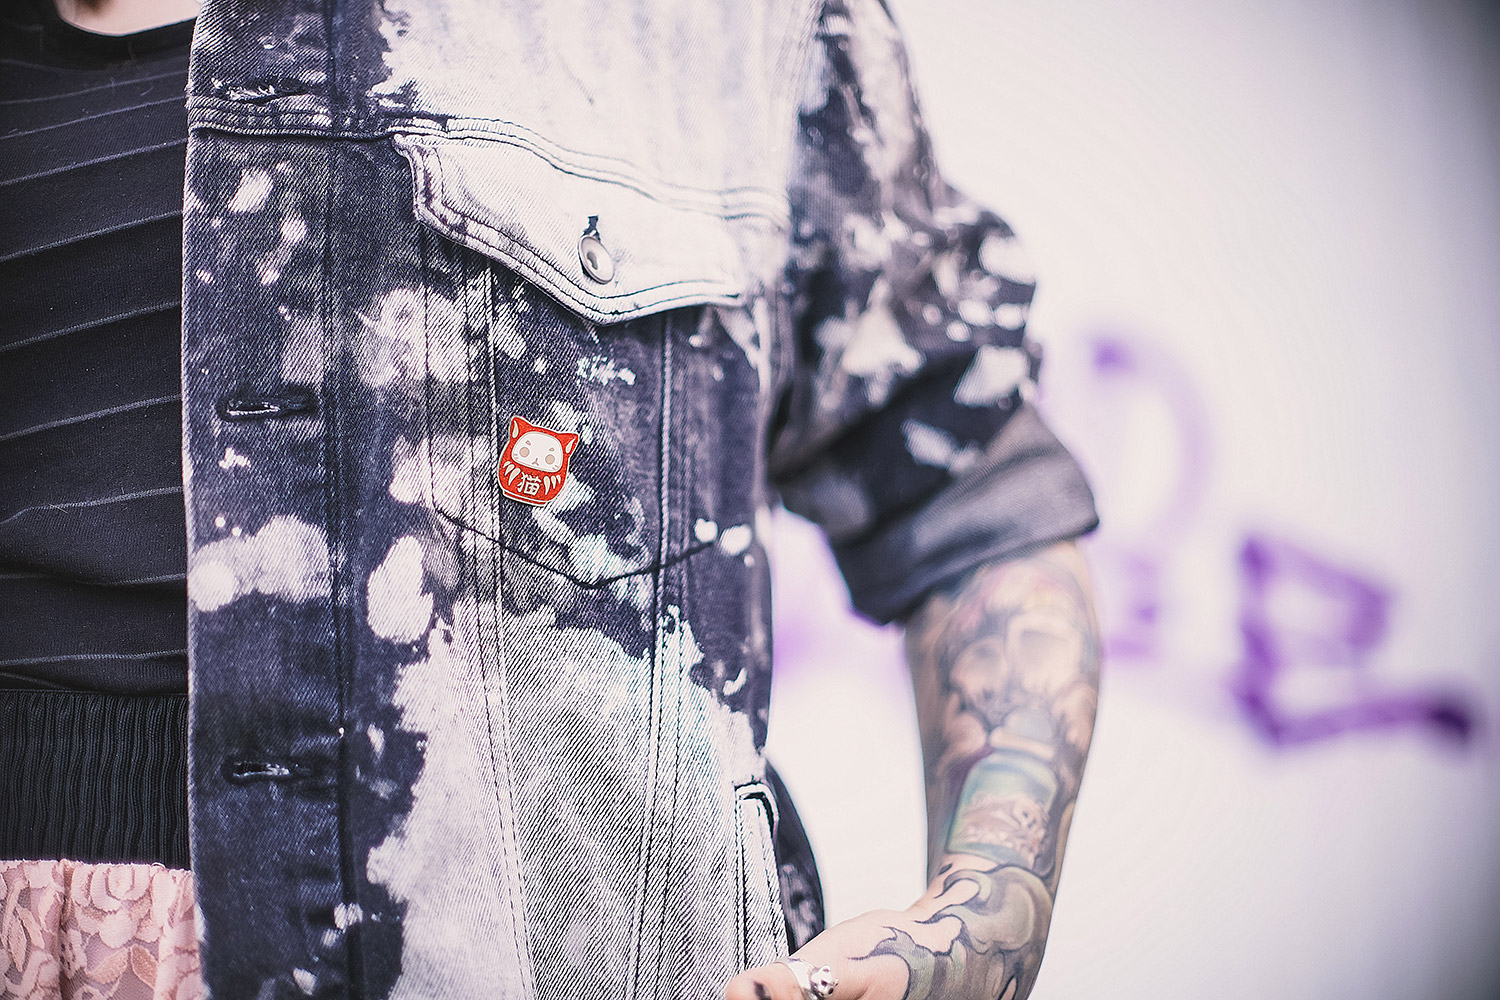 Strumpfhose, punkte, zerrissen, used, kimono, transparent, spitze, rock, Minirock, Spitzenrock, acid wash, Bleichflecken, bleiche, h&m, Jeansjacke, denim jacket, diy, luna beanie, Mütze, killstar, rosa haare, tattoos, evoli tattoo, pokemon tattoo, chris stockings, alternative, alternative fashion, alternative girl, alternative mode, altgirl, berlin, berlin fashion, berlin fashion blogger, berlin mode, berlin streetstyle, blogger, fashion blogger, girls with piercings, girls with tattoos, grunge, grunge fashion, grunge mode, mode, Punk, punk fashion, punk mode, punkgirl, punkmädchen, scenehair, snakebites, split hair, splithair, tattoomädchen, tattoomodel, neko daruma, japanisch, pin